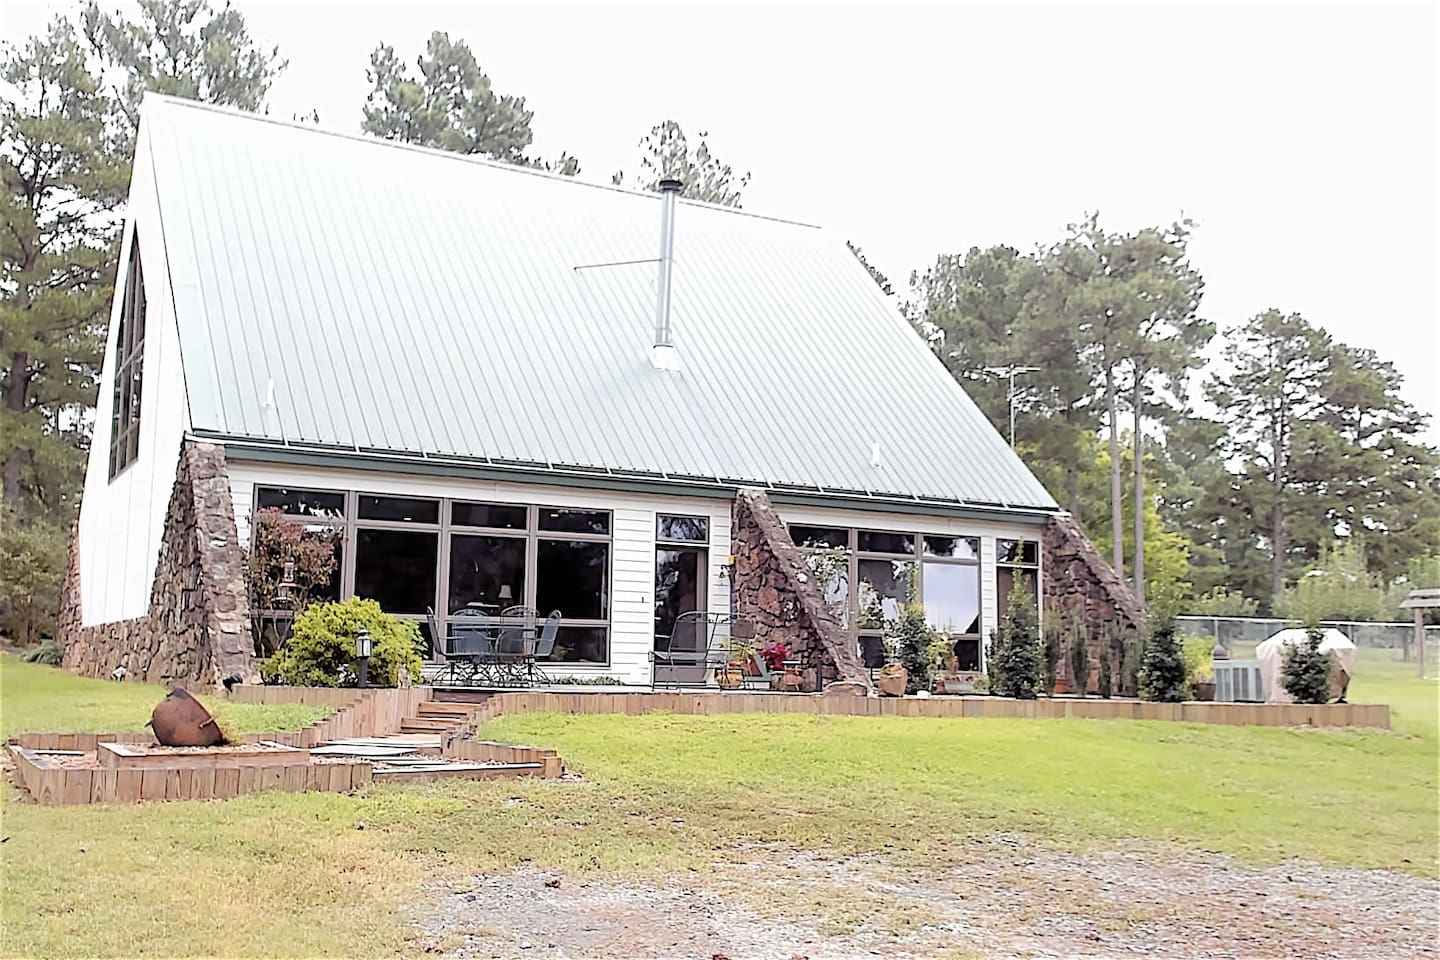 Come and relax and/or explore. Located 10 minutes from Russellville, AR. The back deck faces west to capture the view of Mt. Nebo and sunsets.